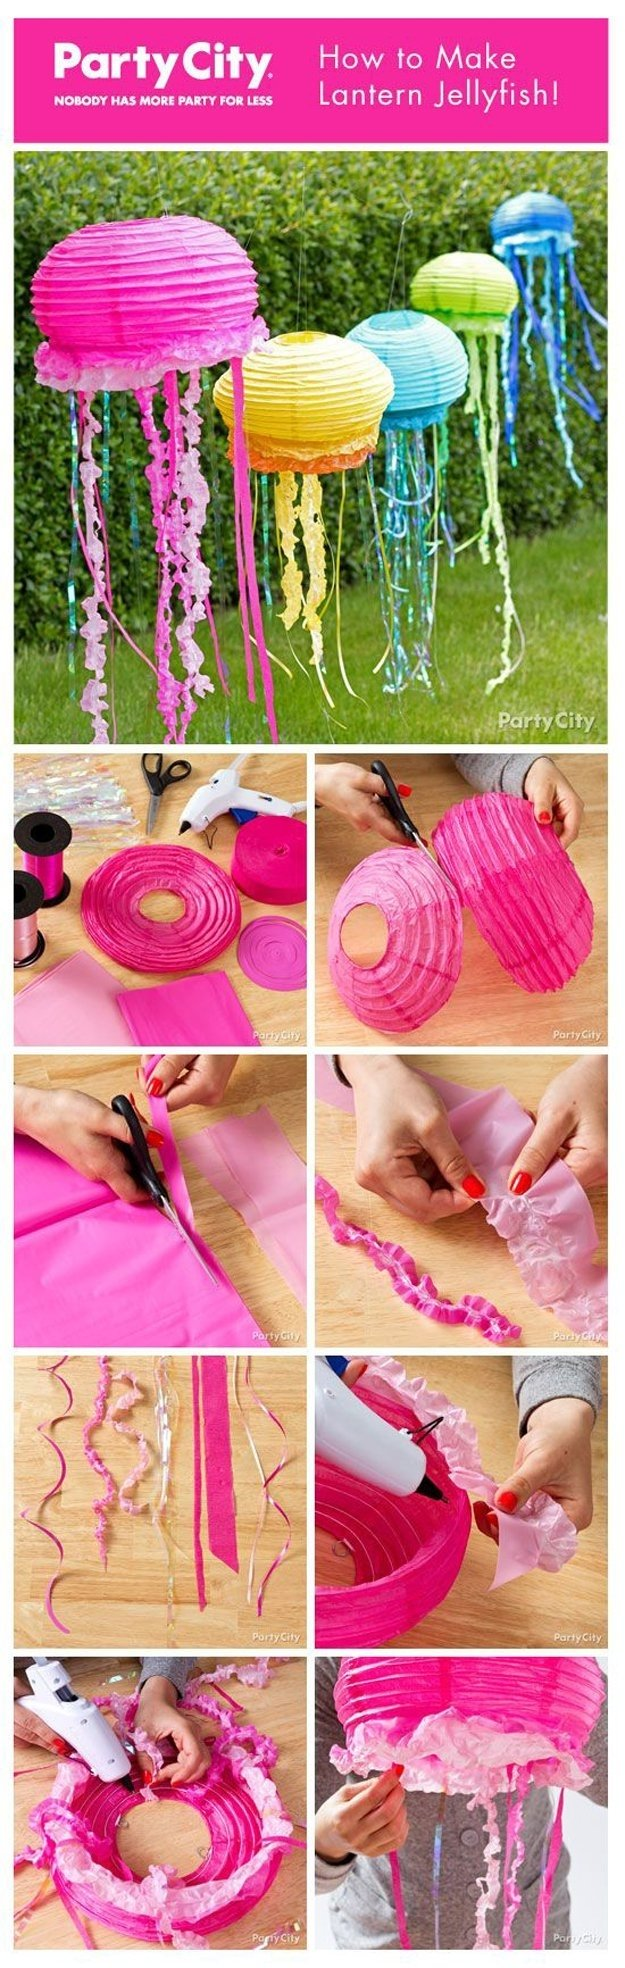 10 Stunning Craft Ideas For Birthday Parties birthday party crafts diy projects craft ideas how tos for home 2020